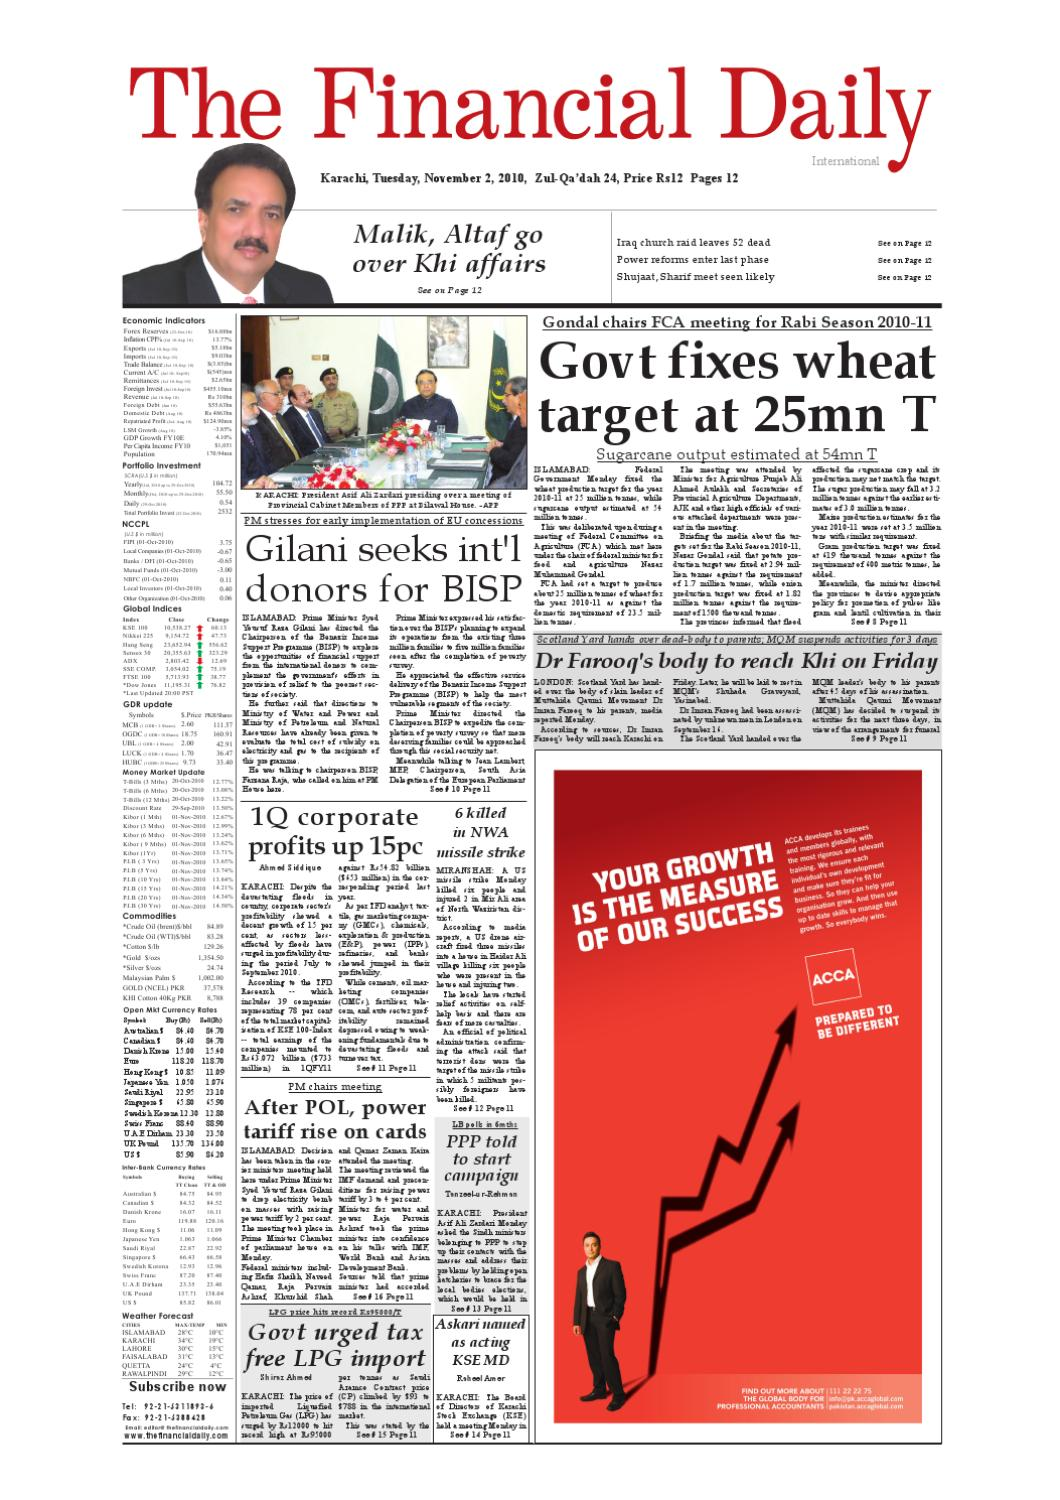 The Financial Daily Epaper 02 11 2010 By The Financial Daily Issuu